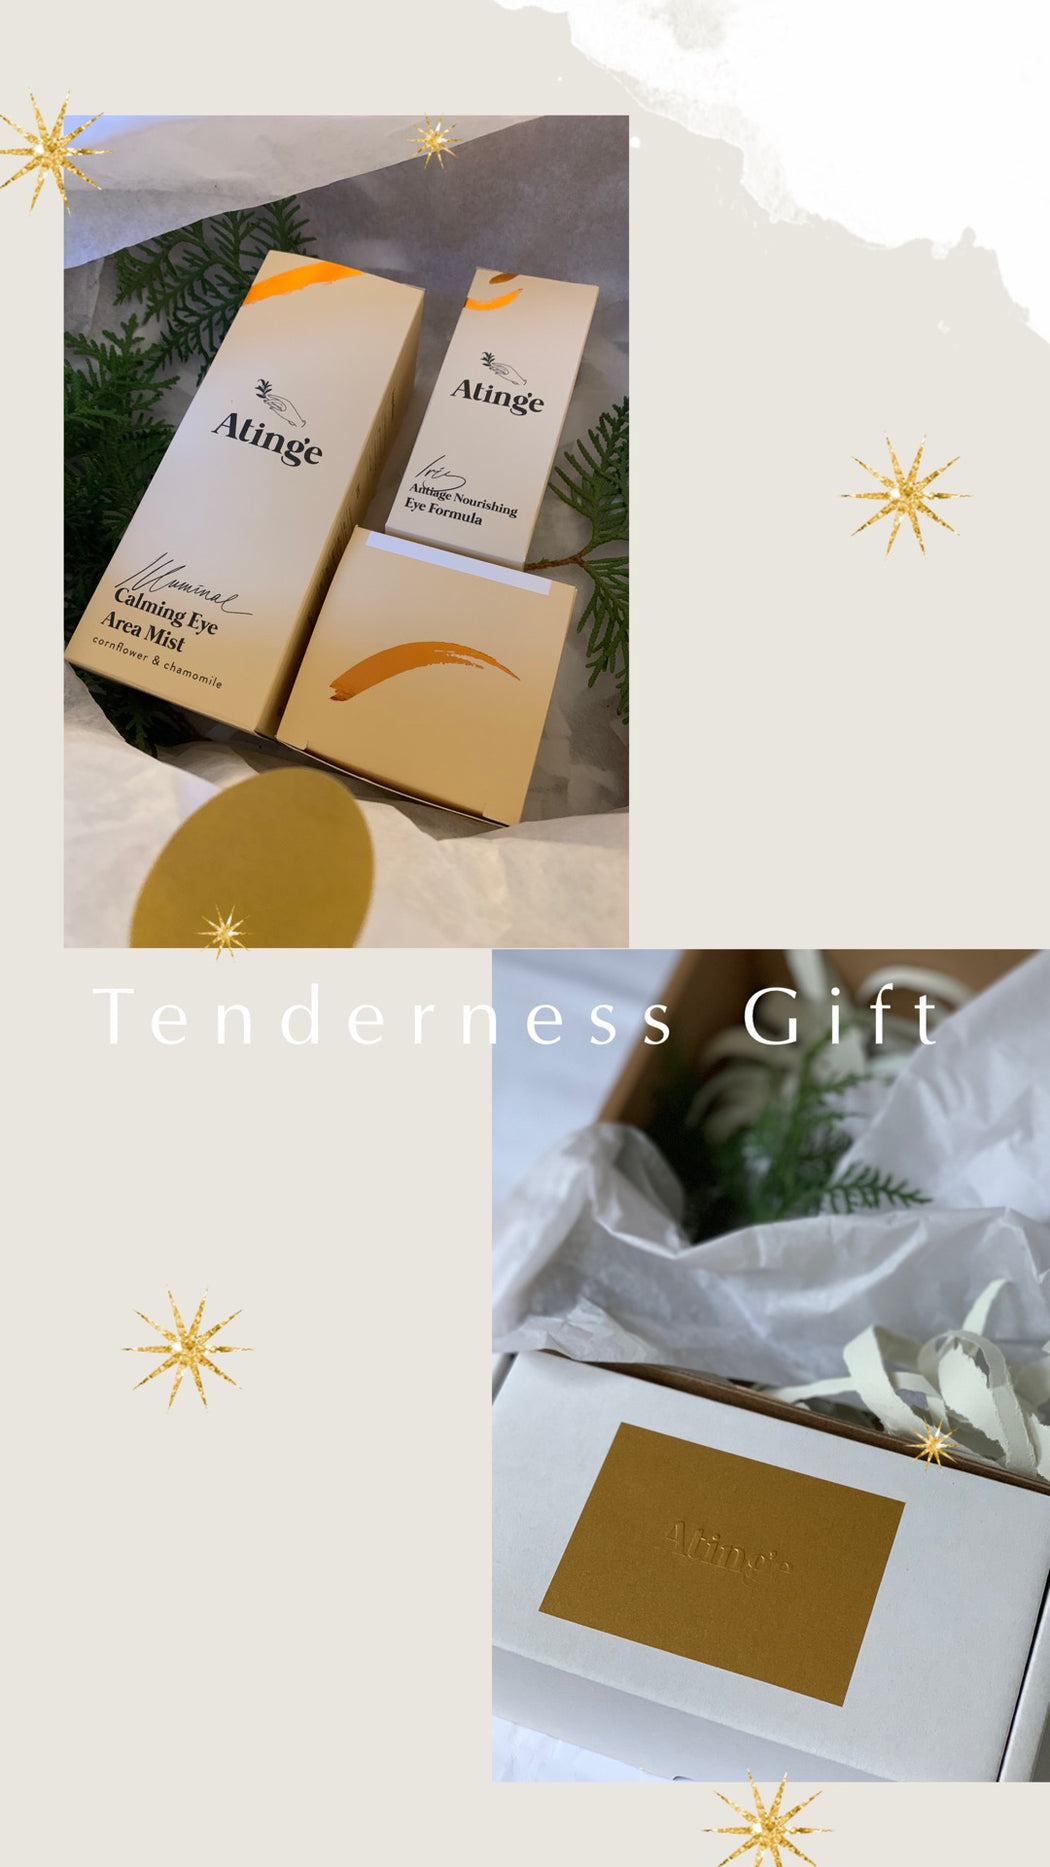 'TENDERNESS' Gift